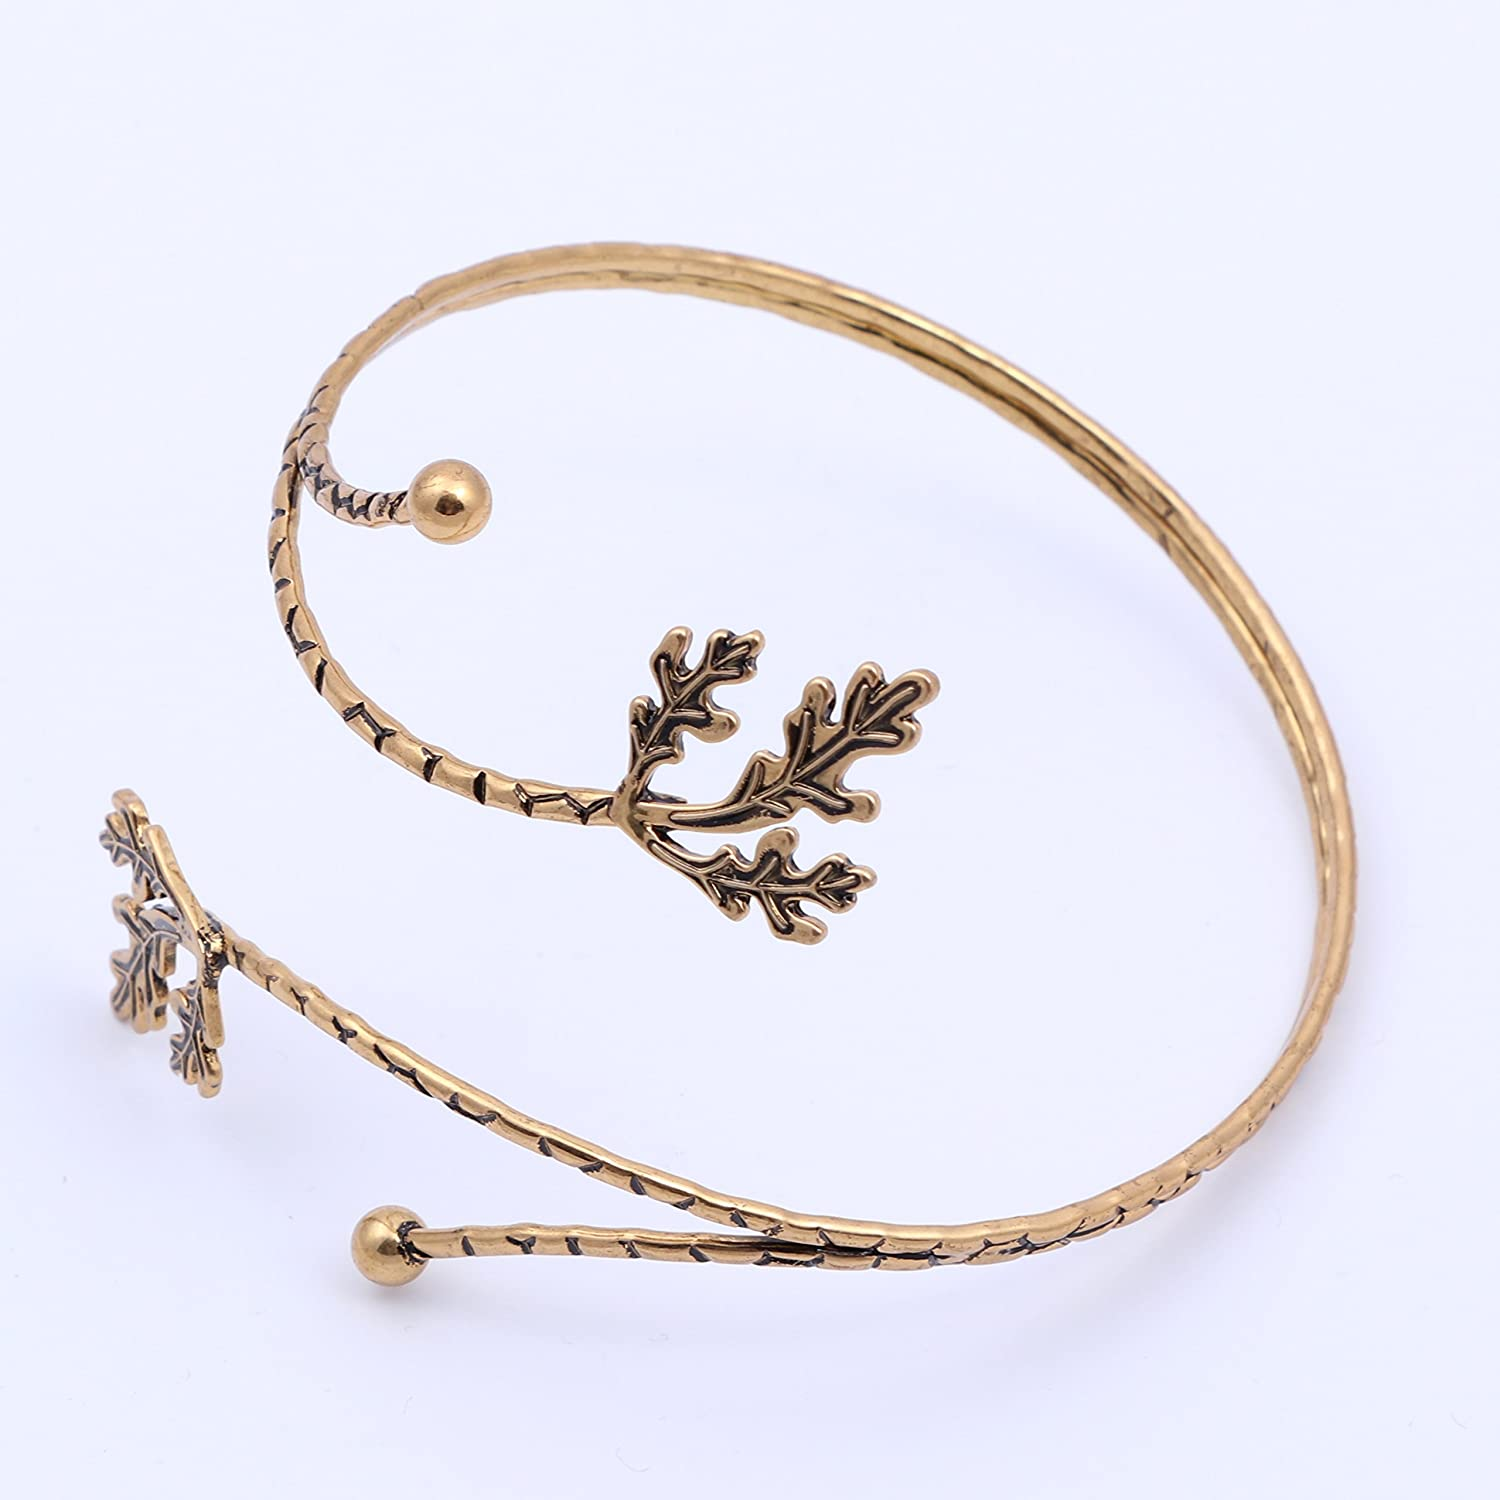 TUSHUO Fashion Gold Tone Leaf Upper Arm Bracelet Armlet Open Bangle Armband